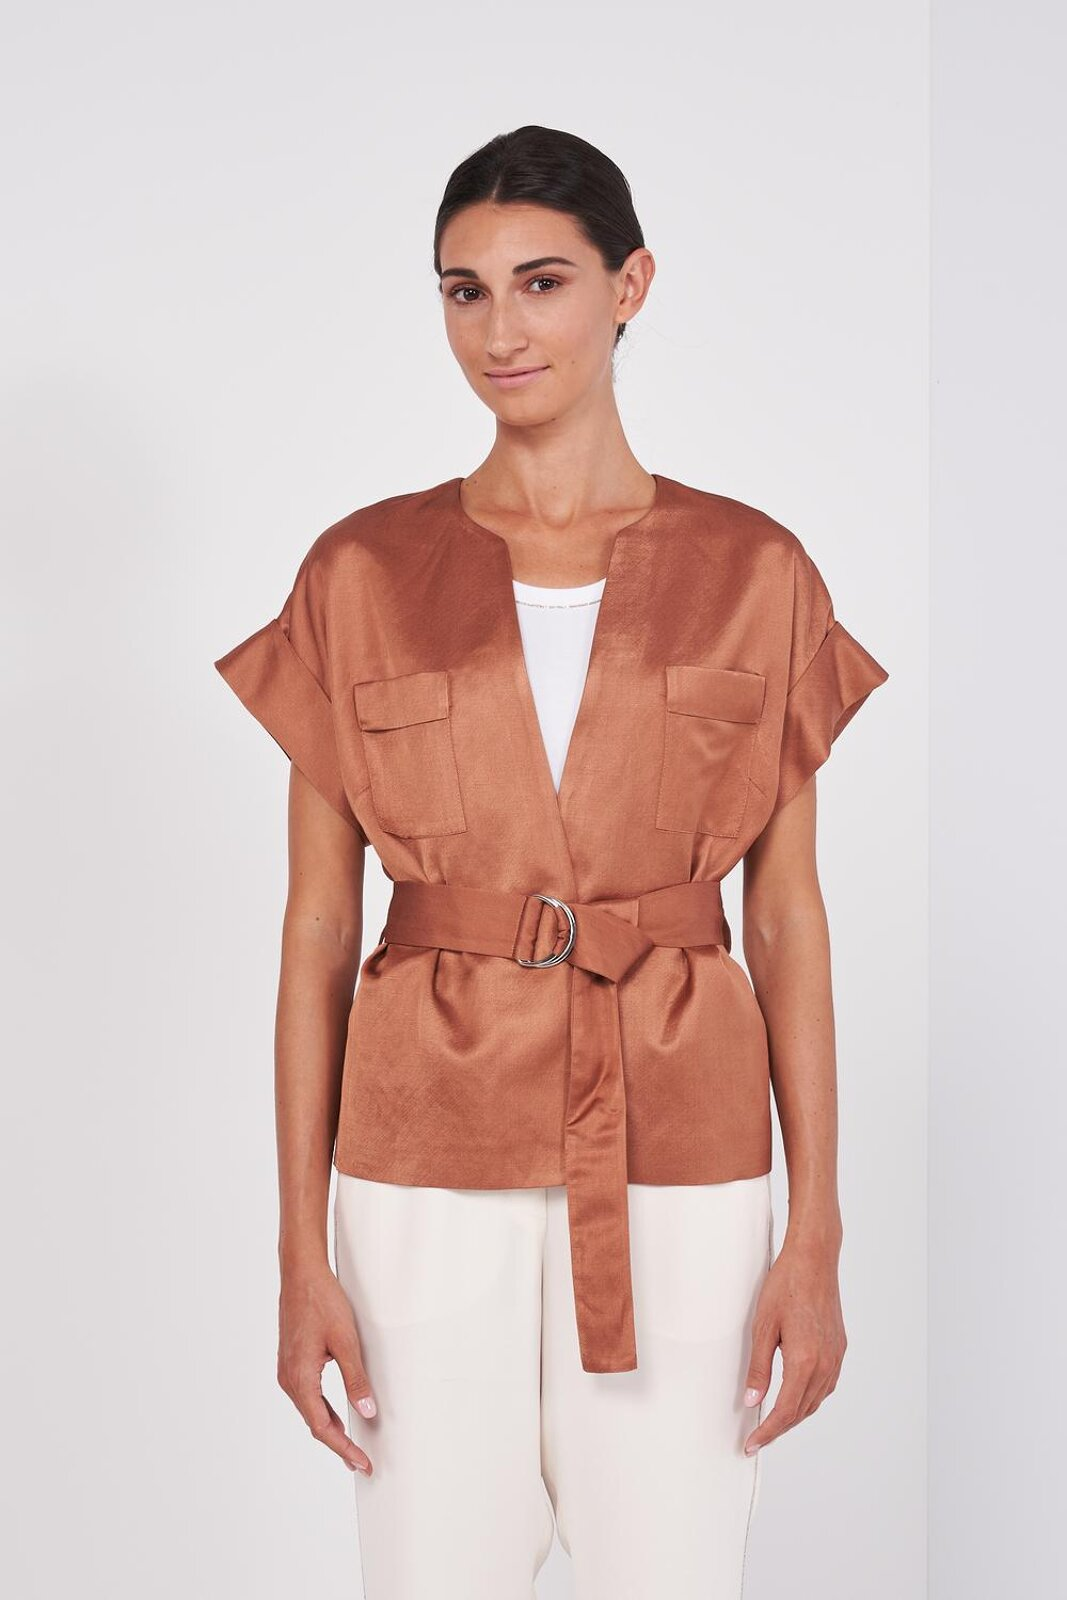 Kimono Jacket In Soft Viscose Satin And Linen With Short Kimono Turned Sleeves. Hidden Button Closure, Two Chest Pockets, Fabric Belt With Adjustable Metal Buckle At The Waist. Regular fit. - Peserico